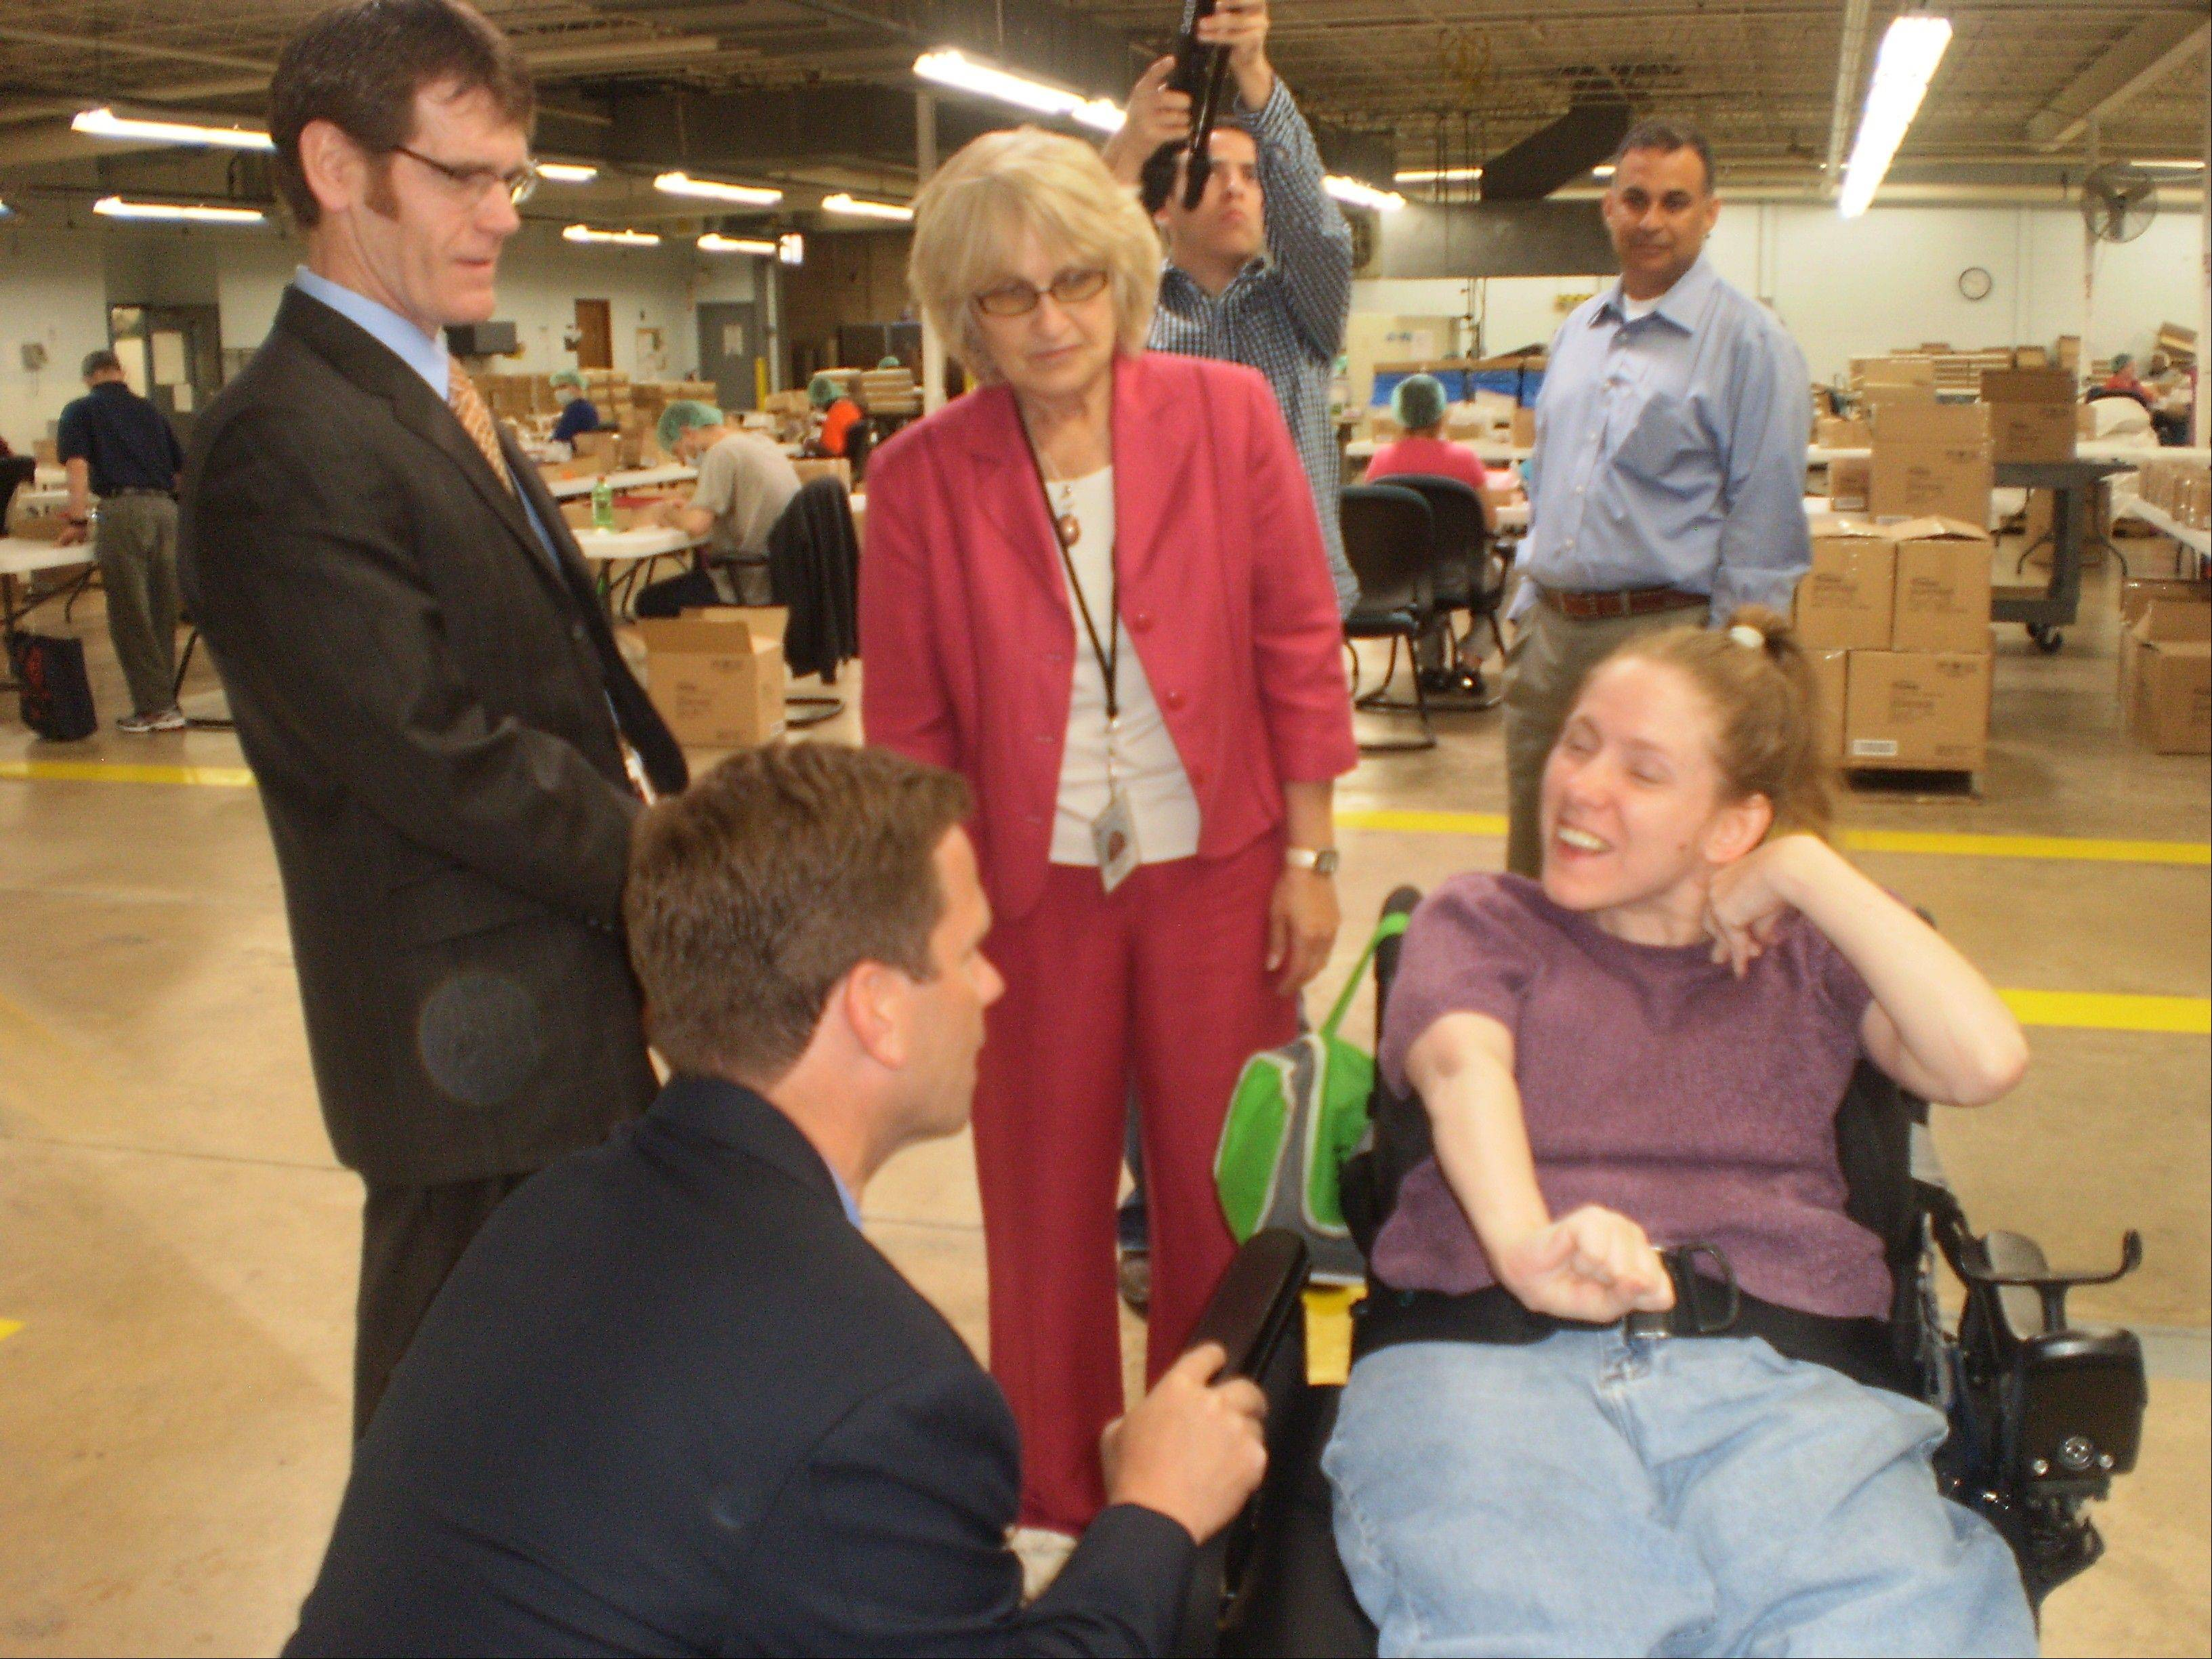 U.S. Rep. Robert Dold speaks with Heather, who receives living and day services from NorthPointe Resources and is enrolled at the College of Lake County.